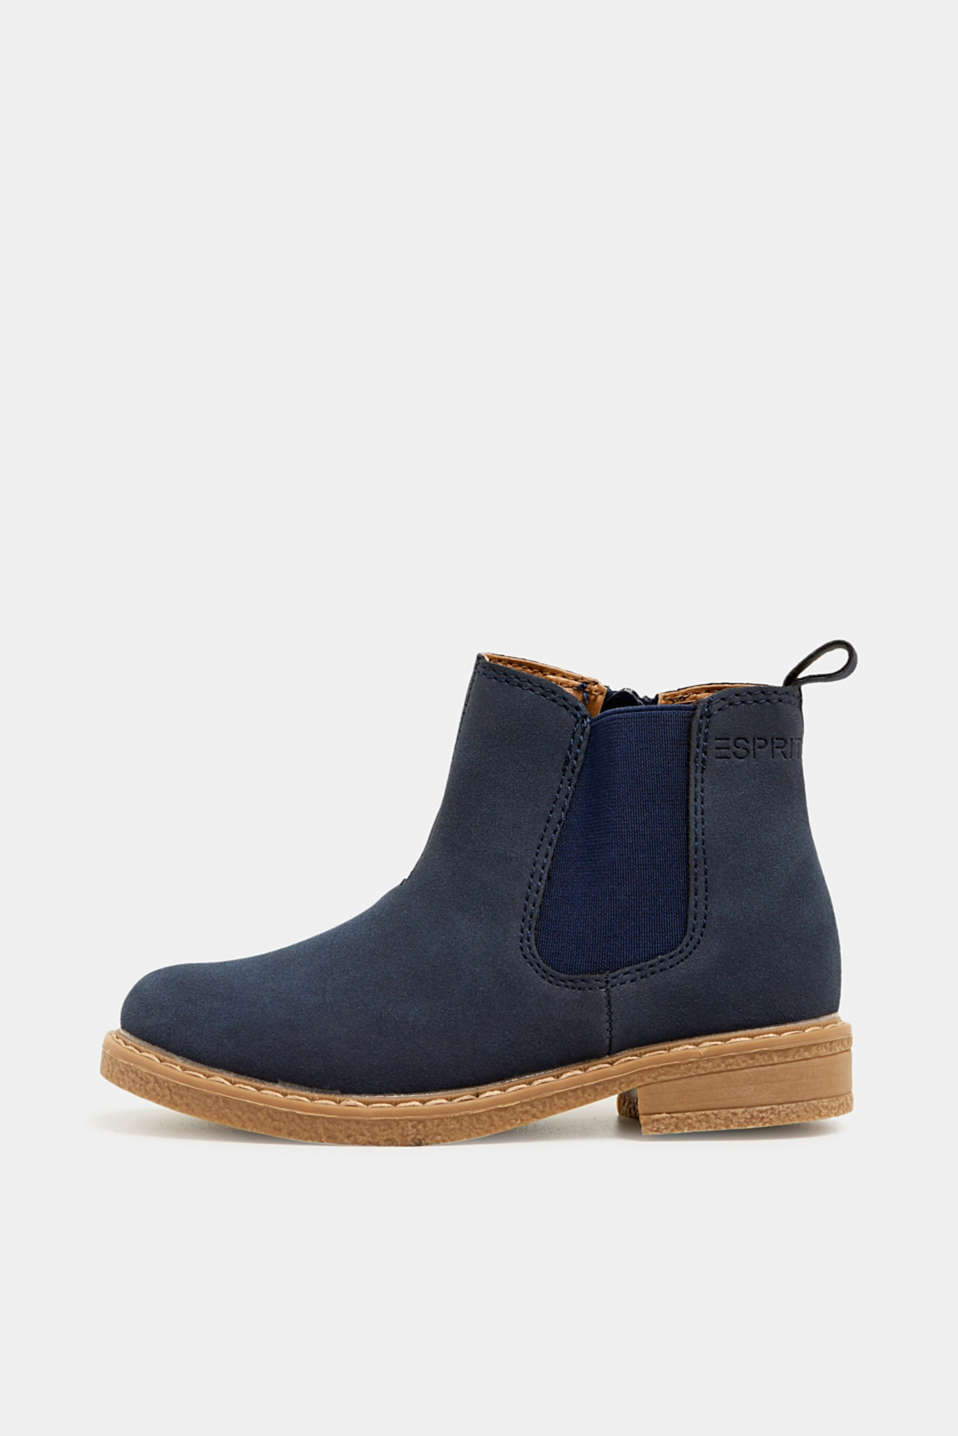 Esprit - Bottines d'aspect cuir velours